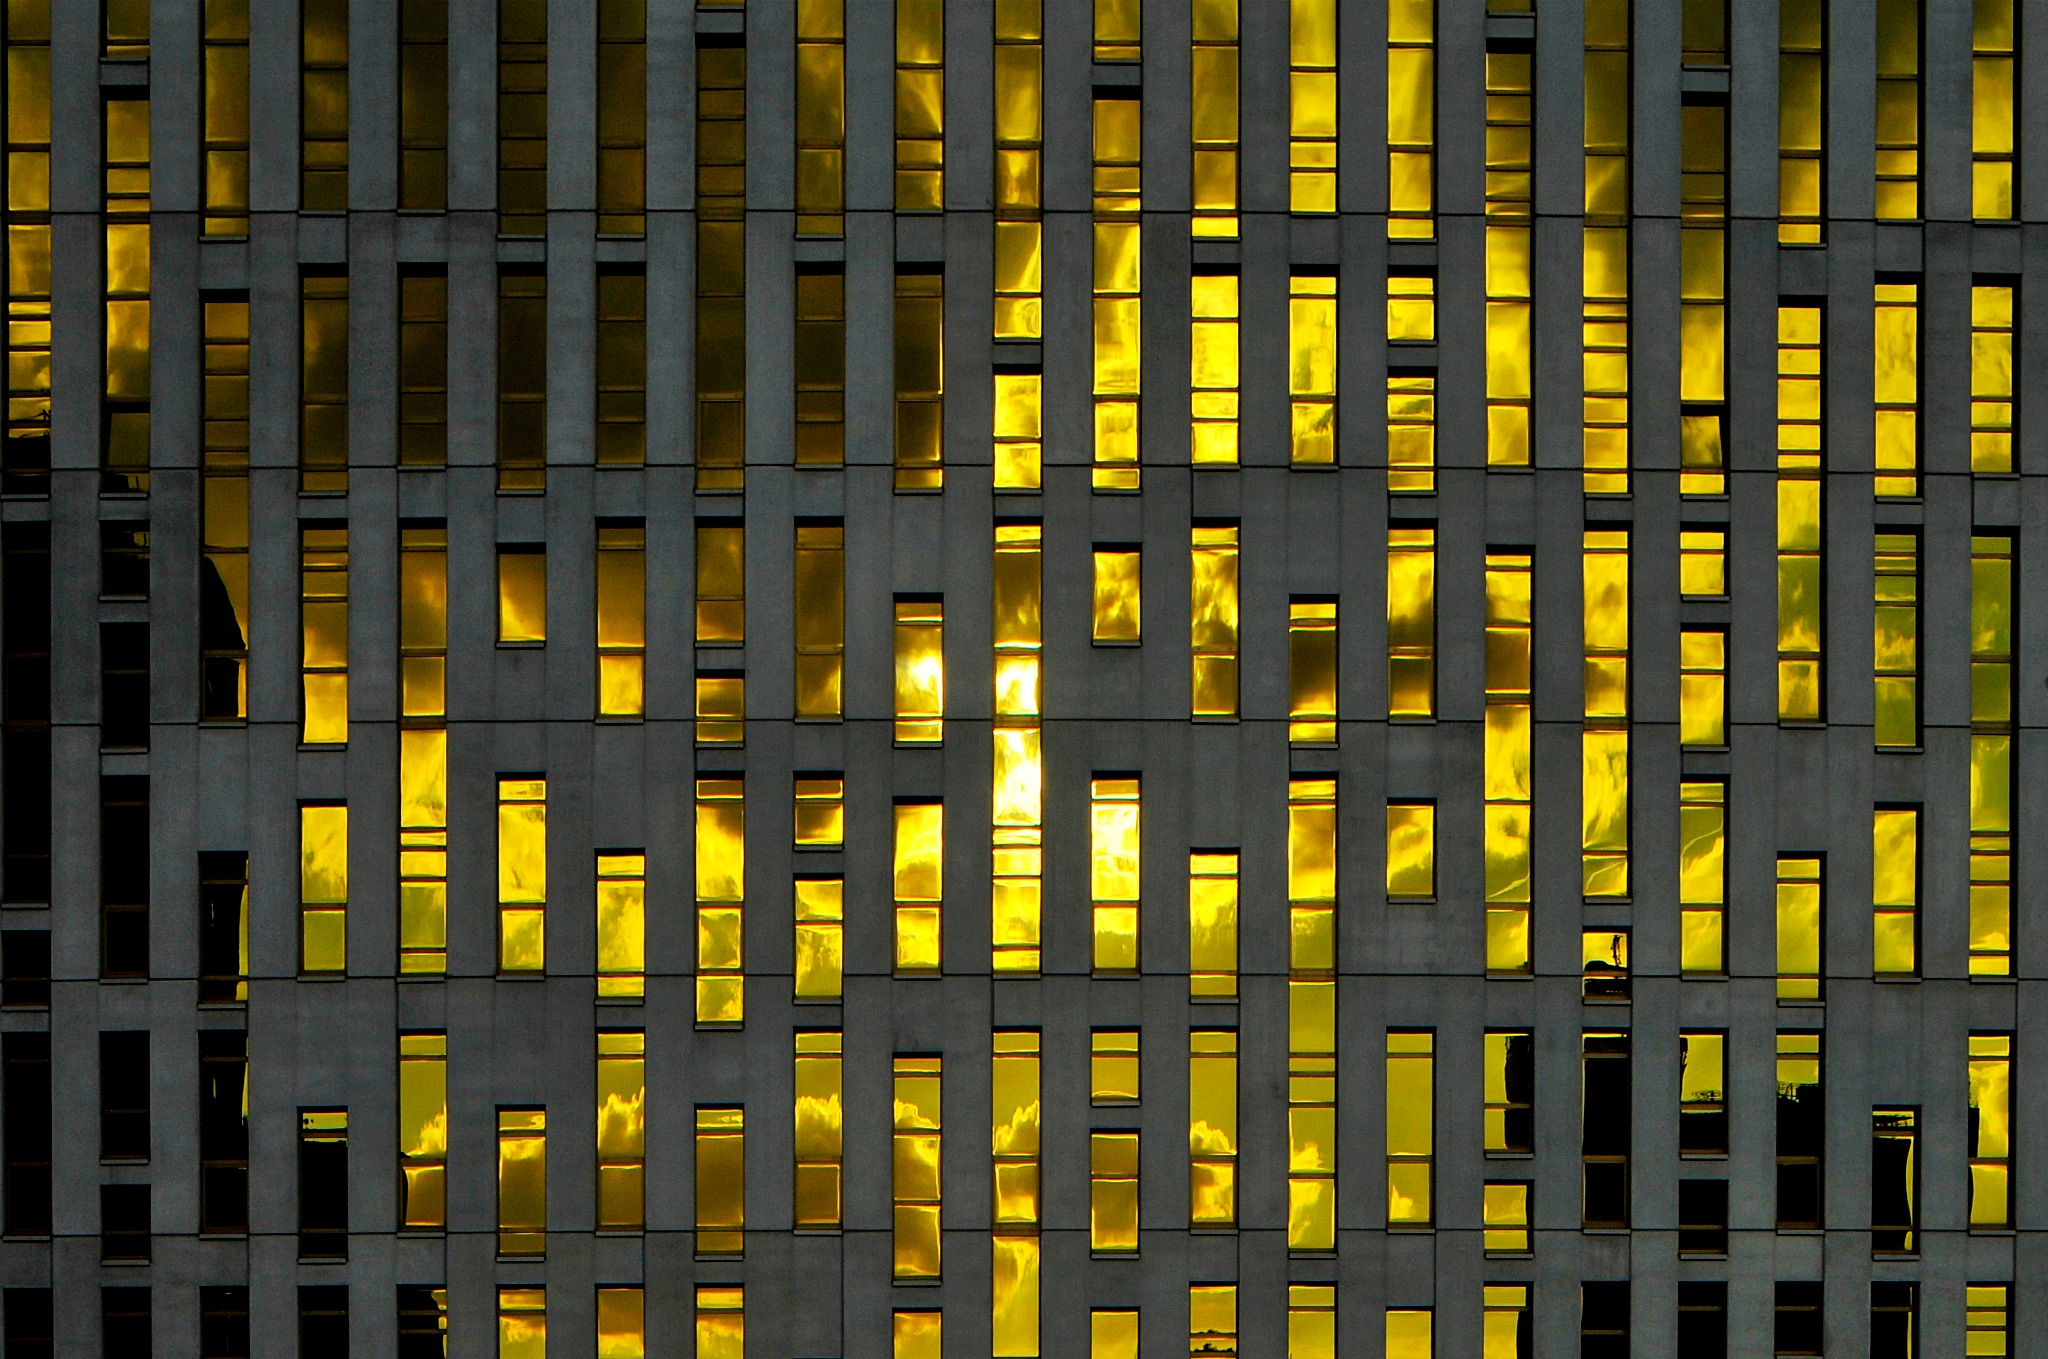 Sunset in the windows by tomkornik